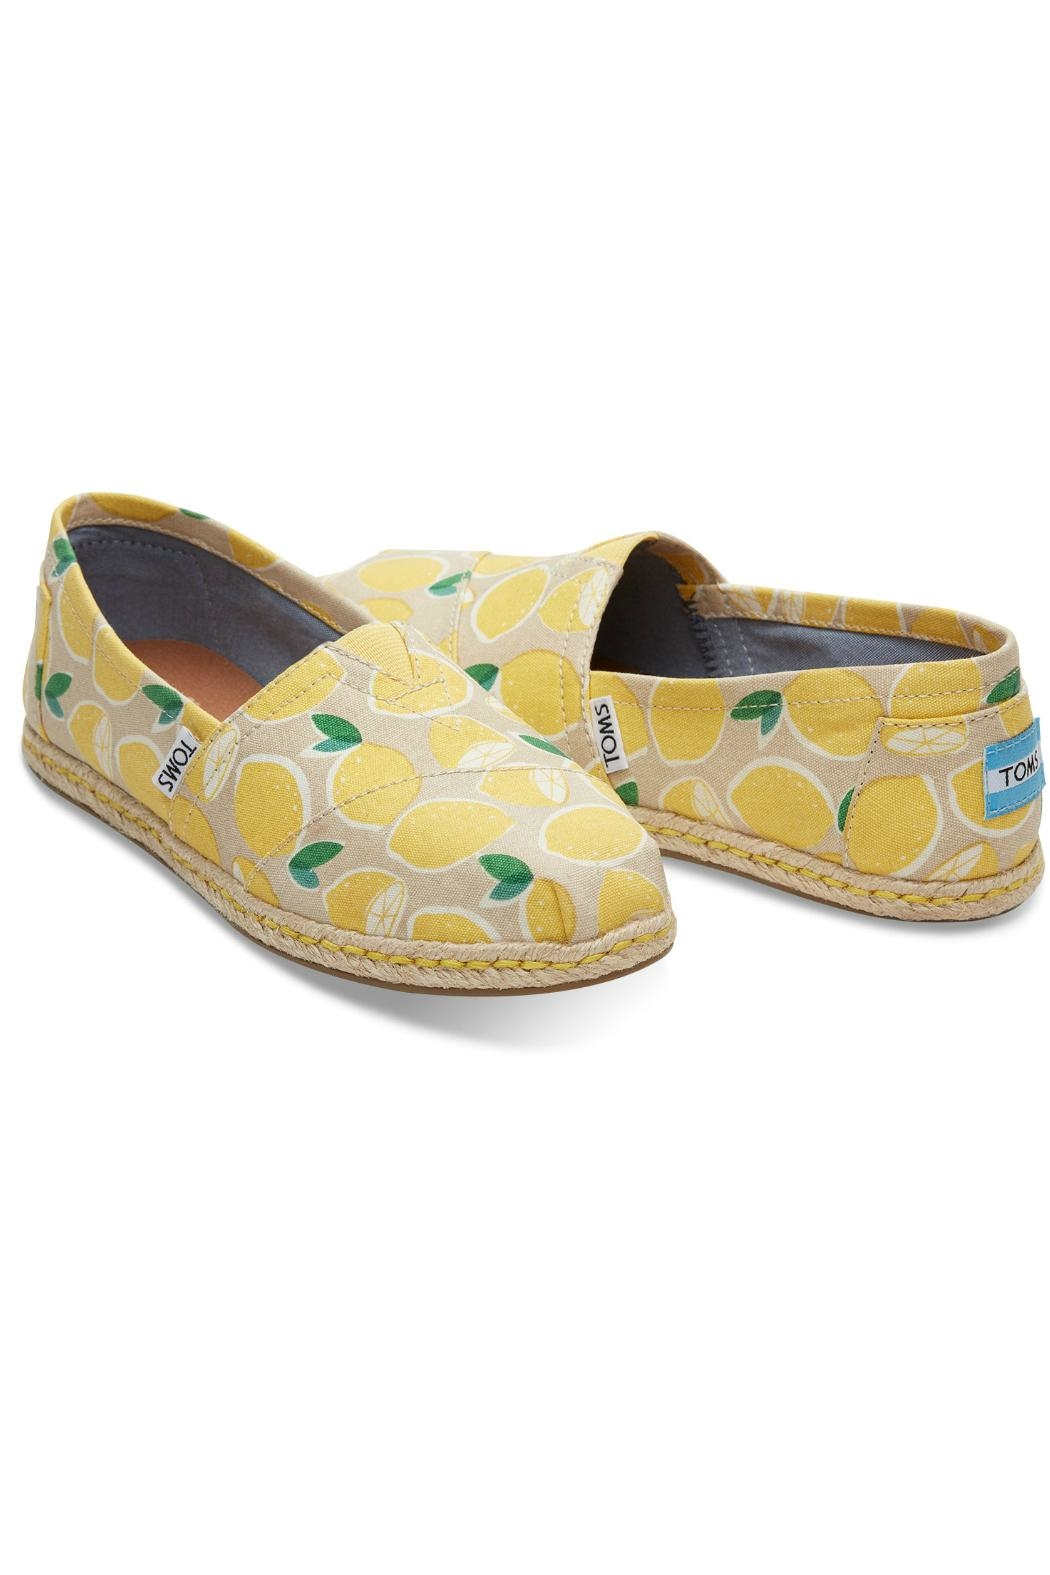 TOMS Blue Aster Shoes - Front Full Image